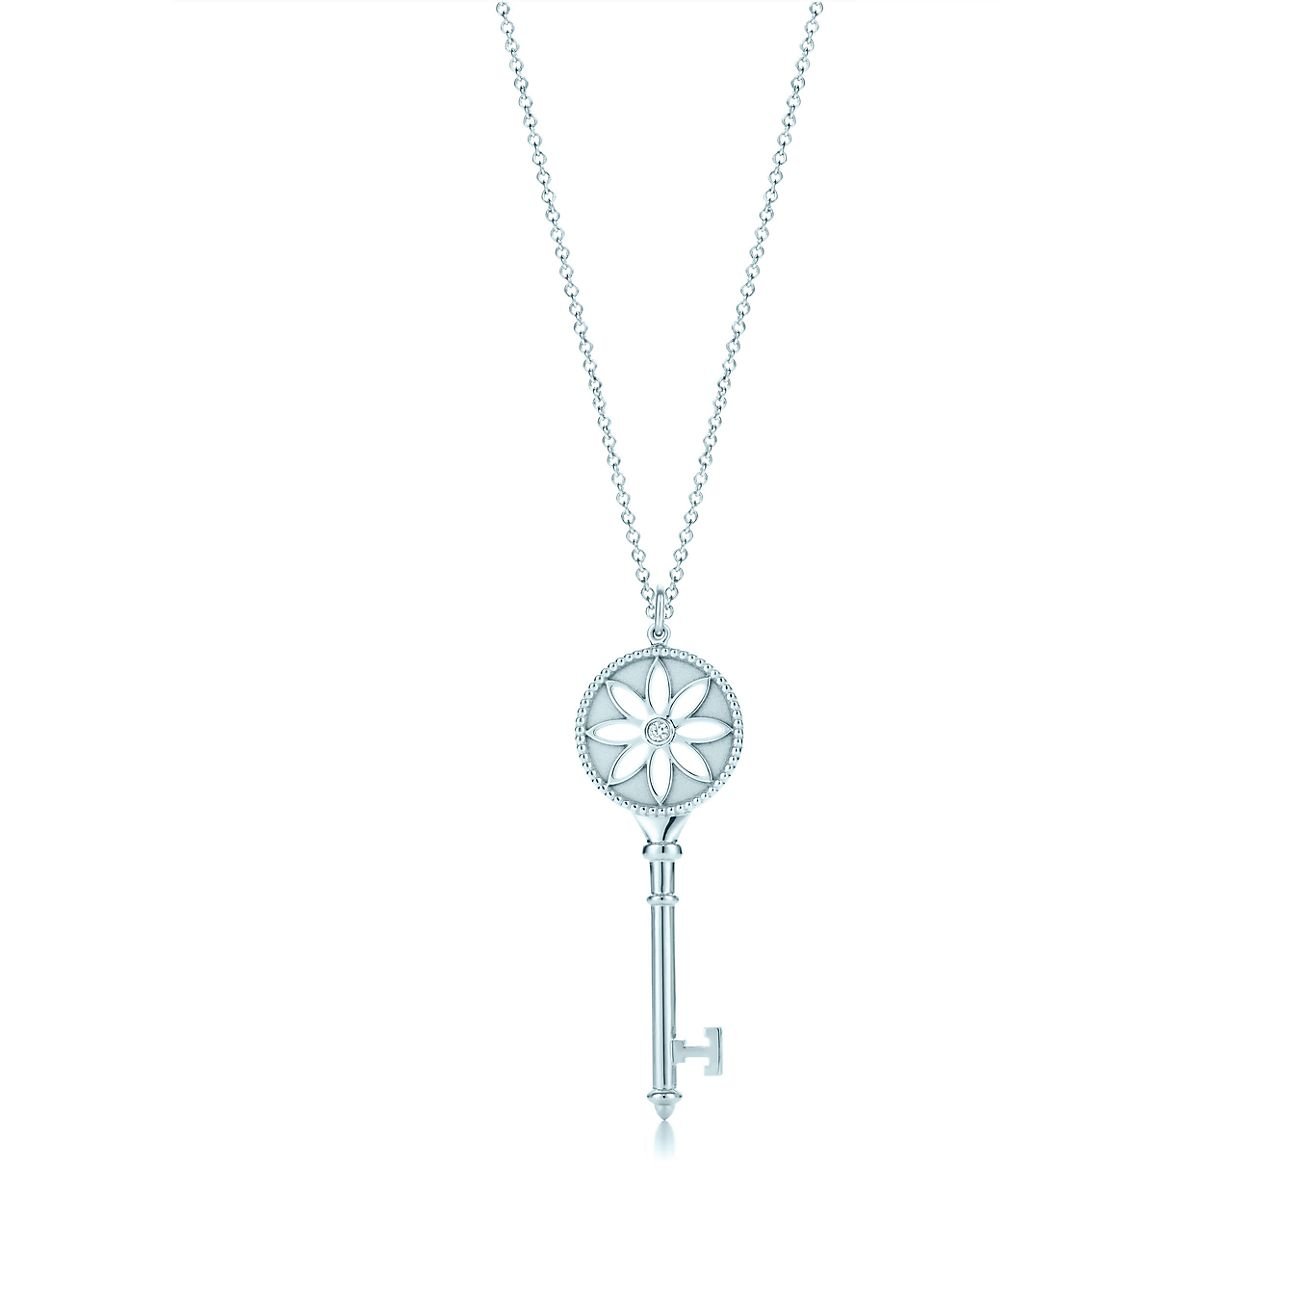 Tiffany keys daisy key pendant in 18k white gold with a diamond on a tiffany keysdaisy key pendant aloadofball Images